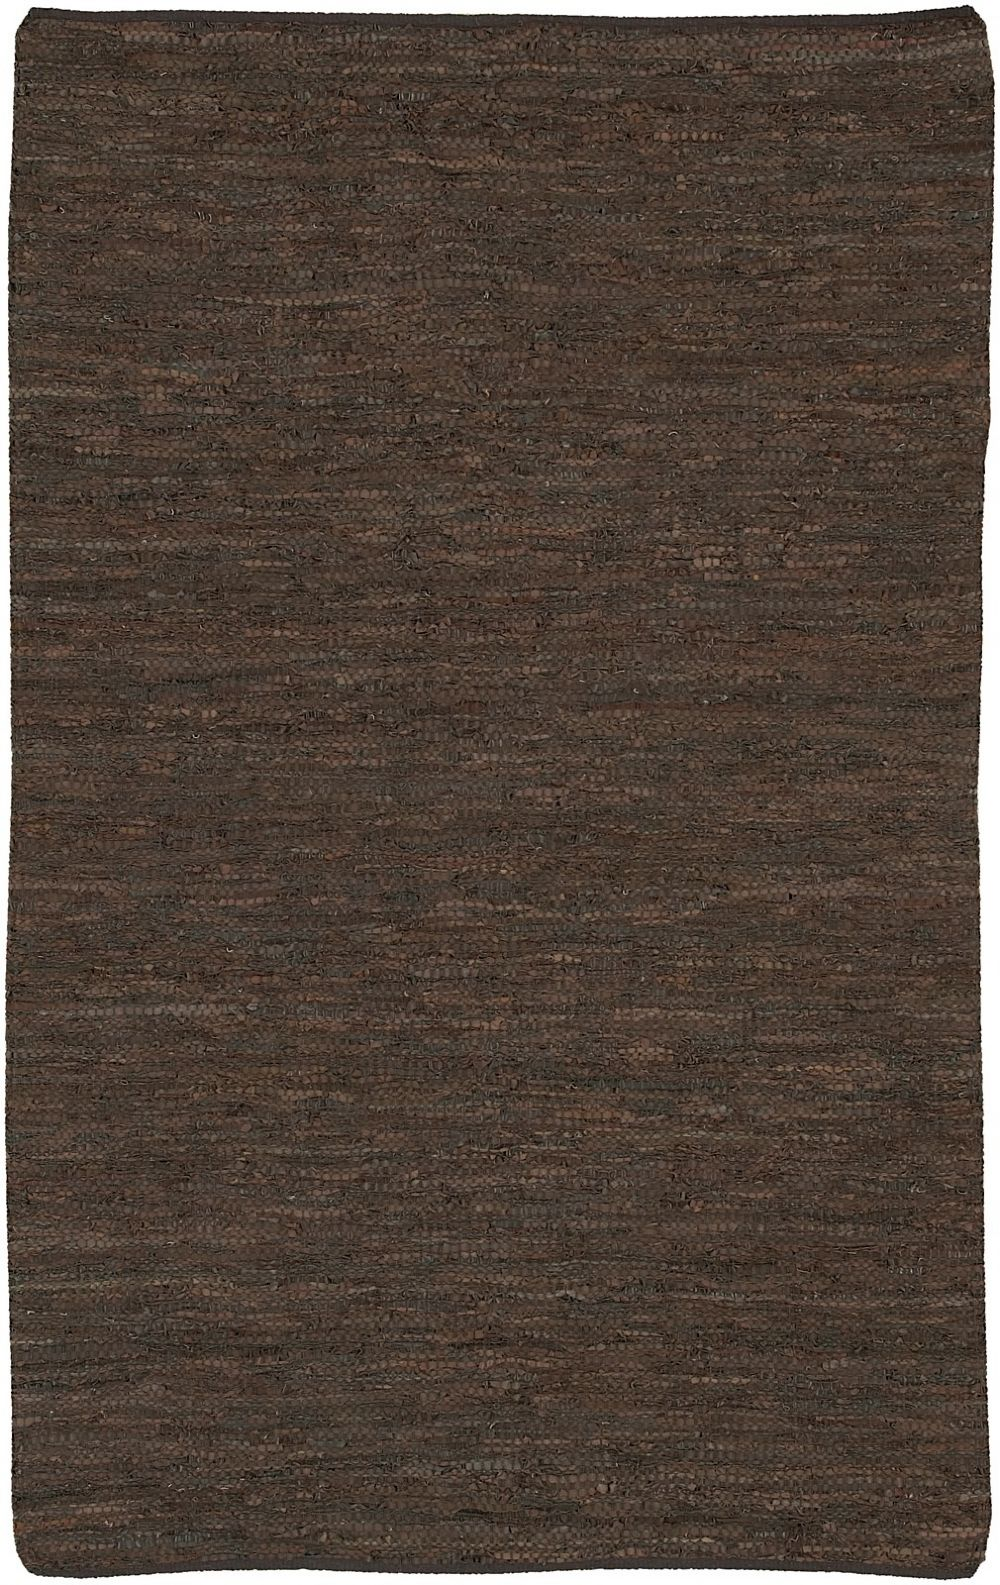 chandra saket contemporary area rug collection